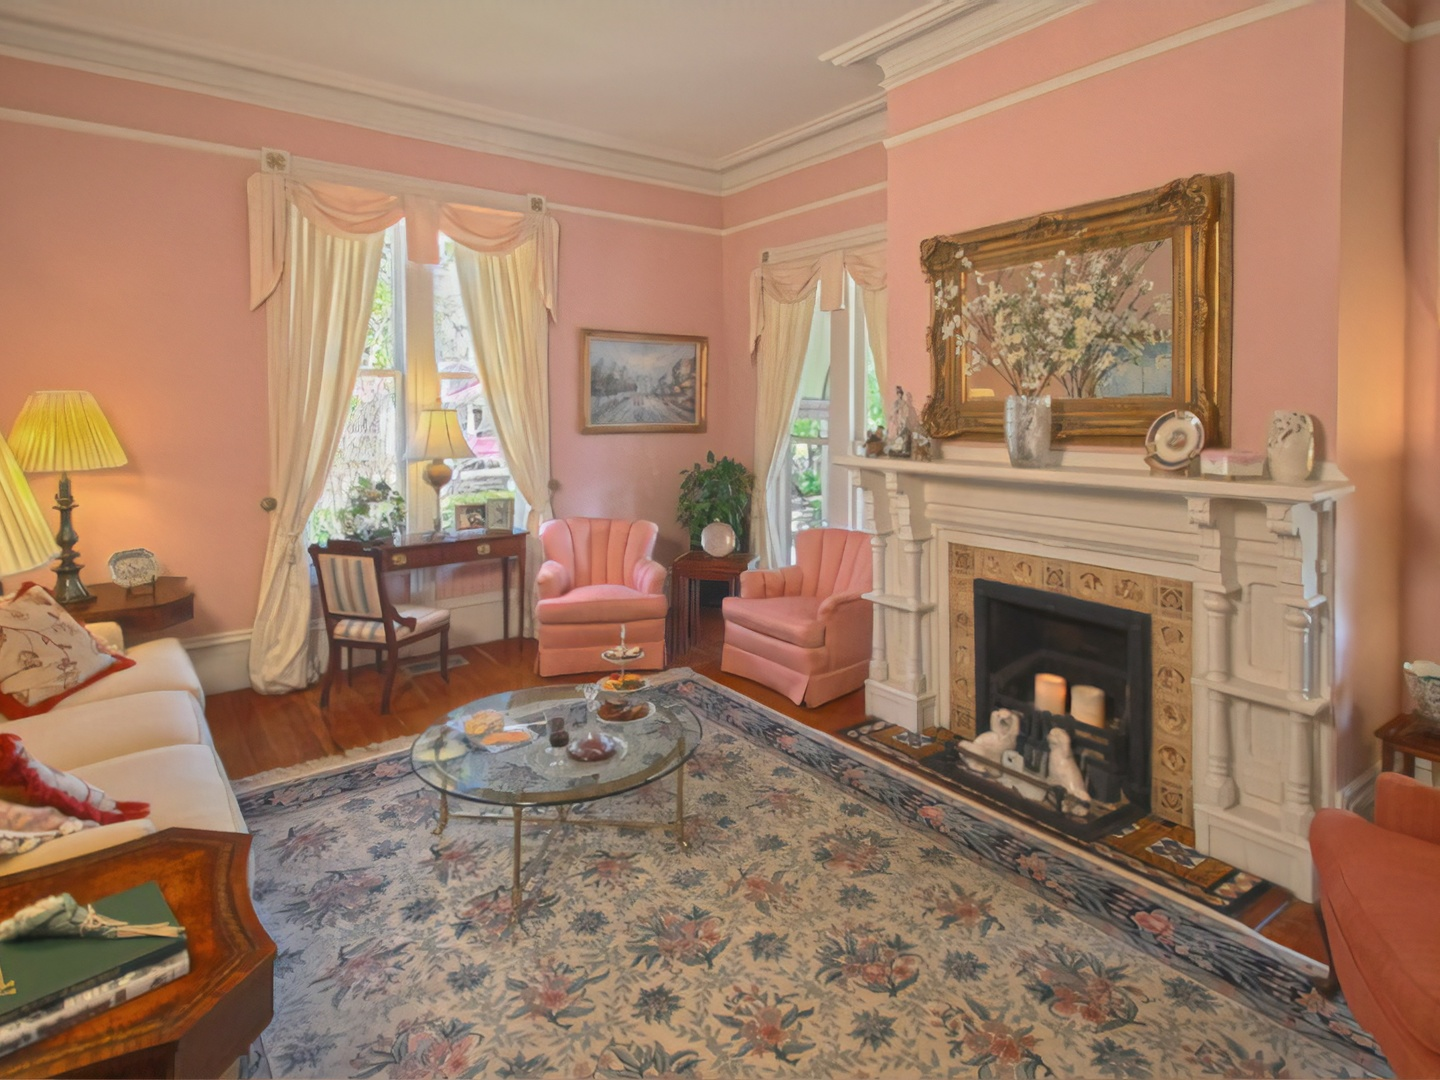 A living room filled with furniture and a fire place at Fairbanks House.